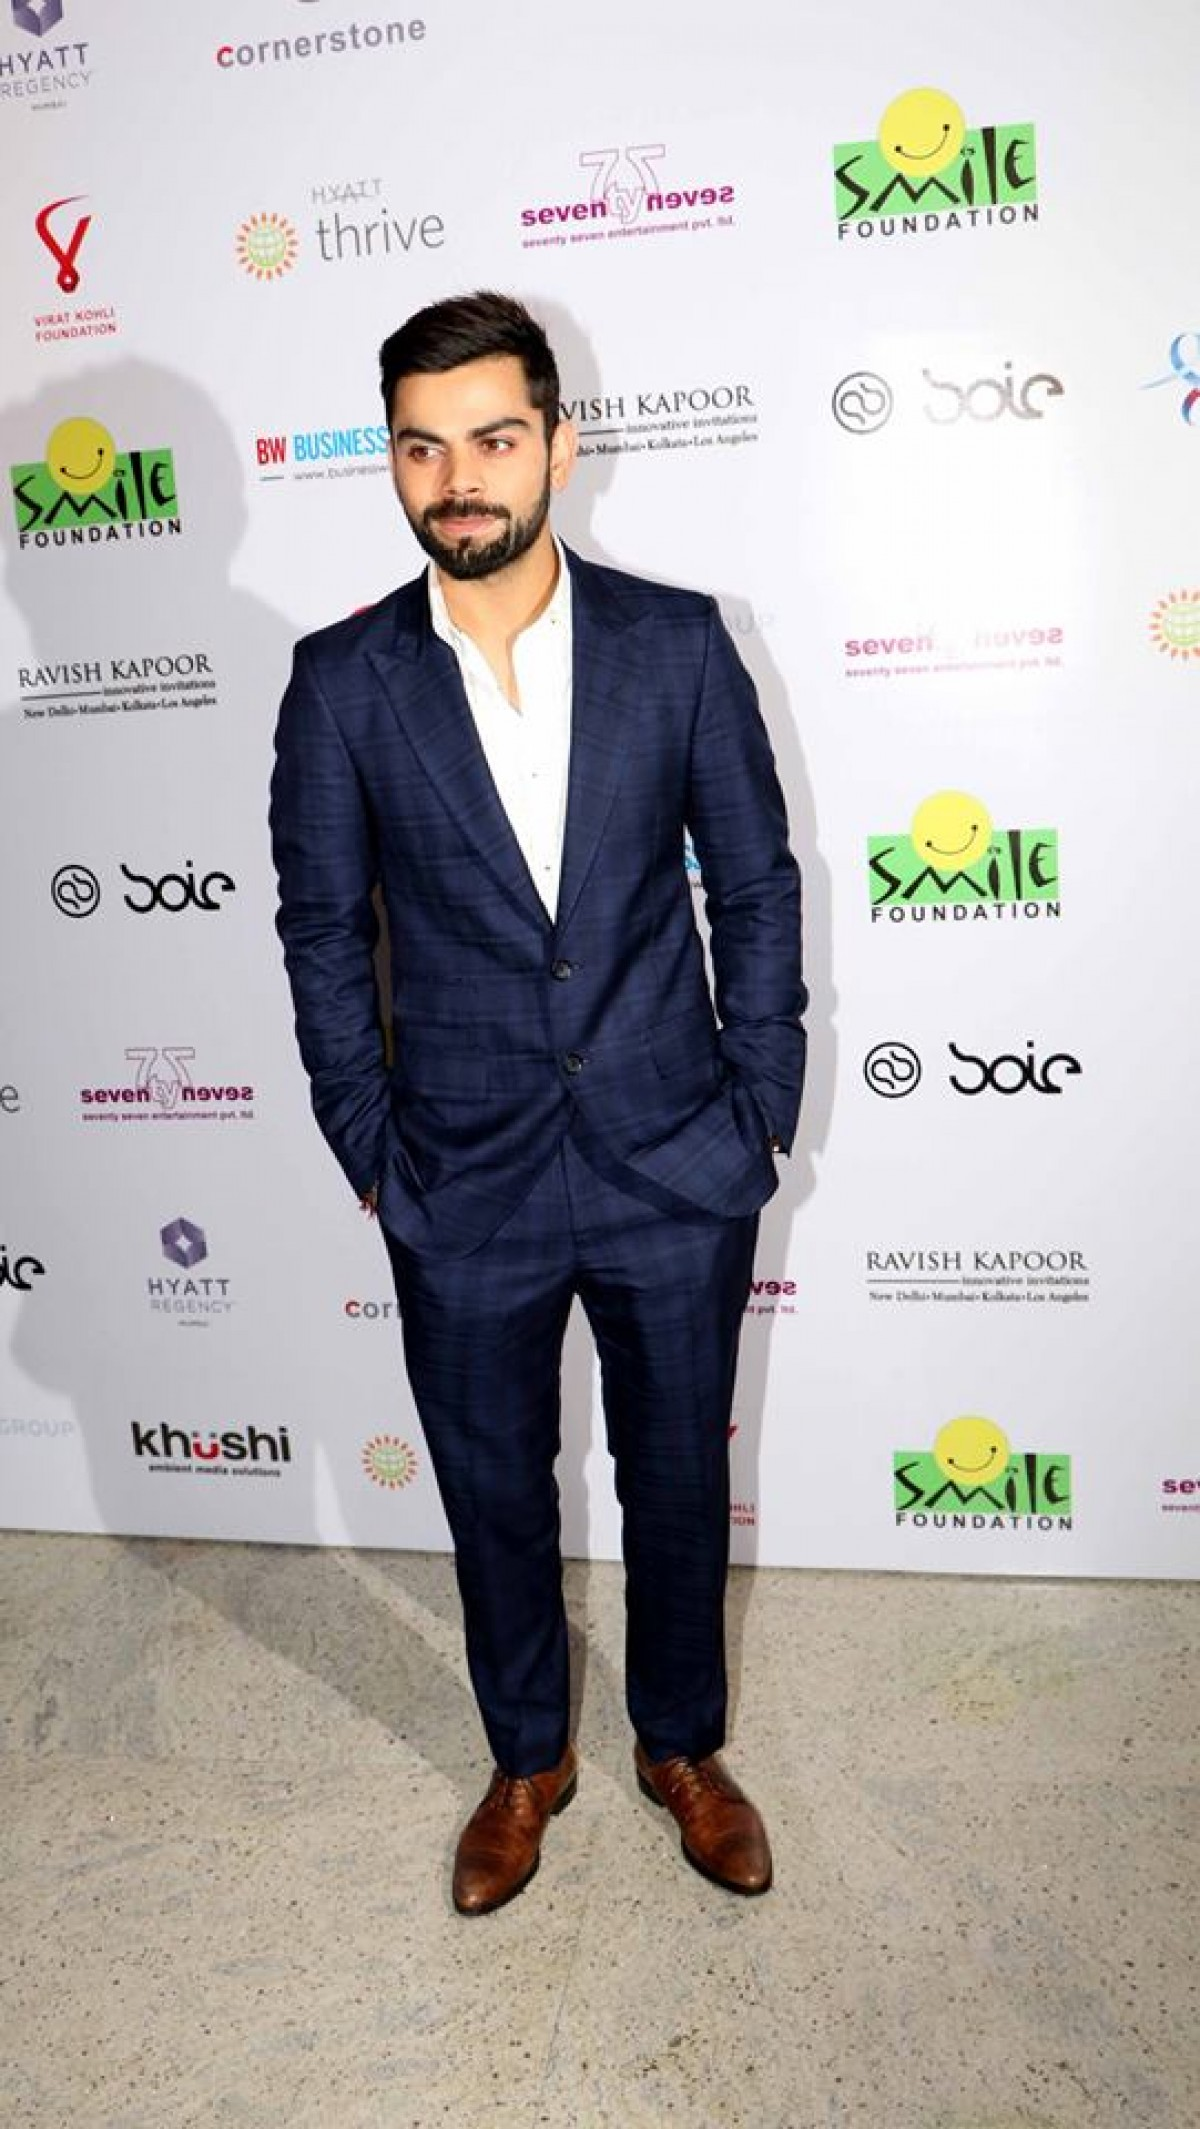 Charity dinner hosted by Virat Kohli foundation